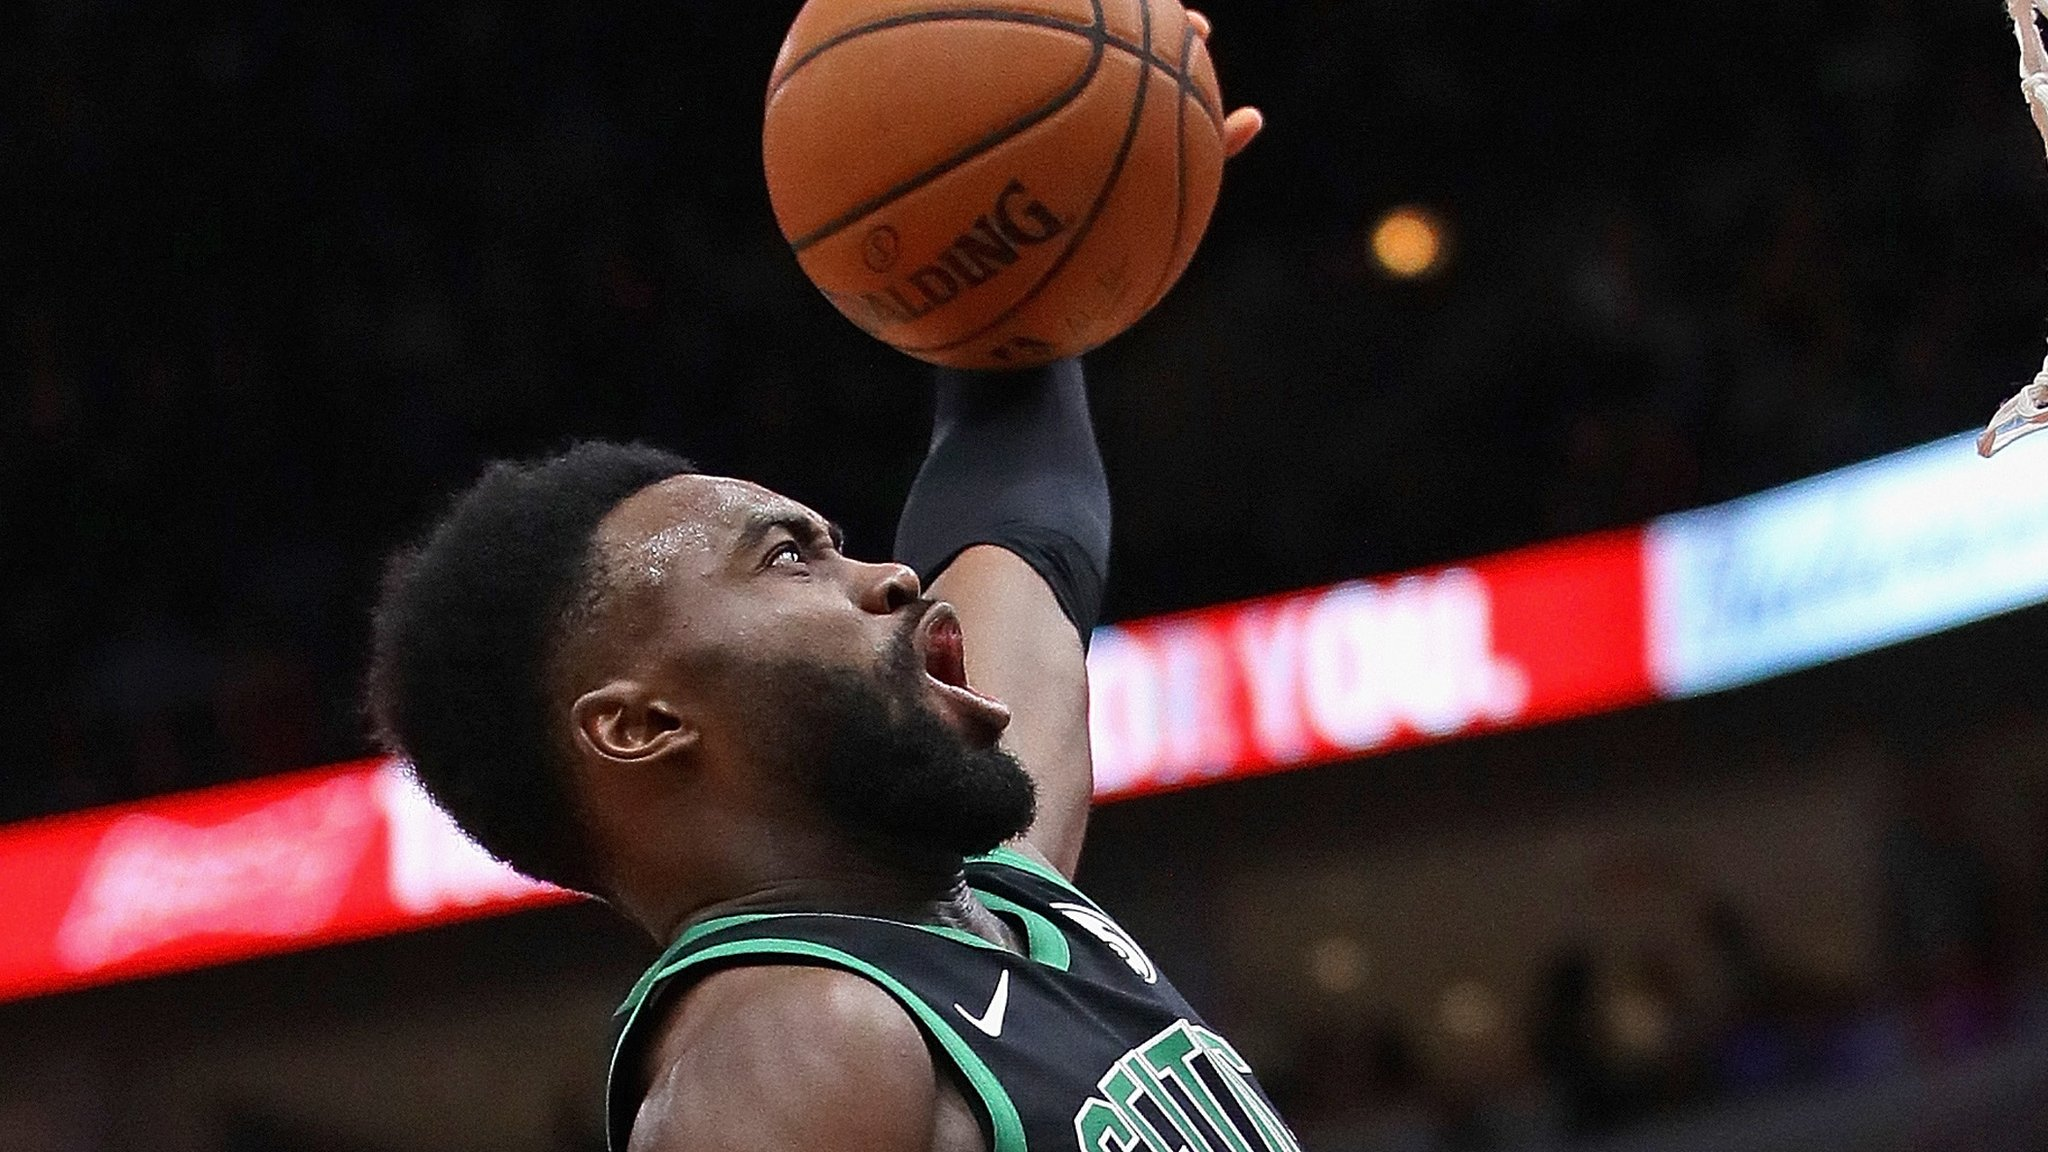 Boston Celtics make franchise history with 133-77 victory over Chicago Bulls